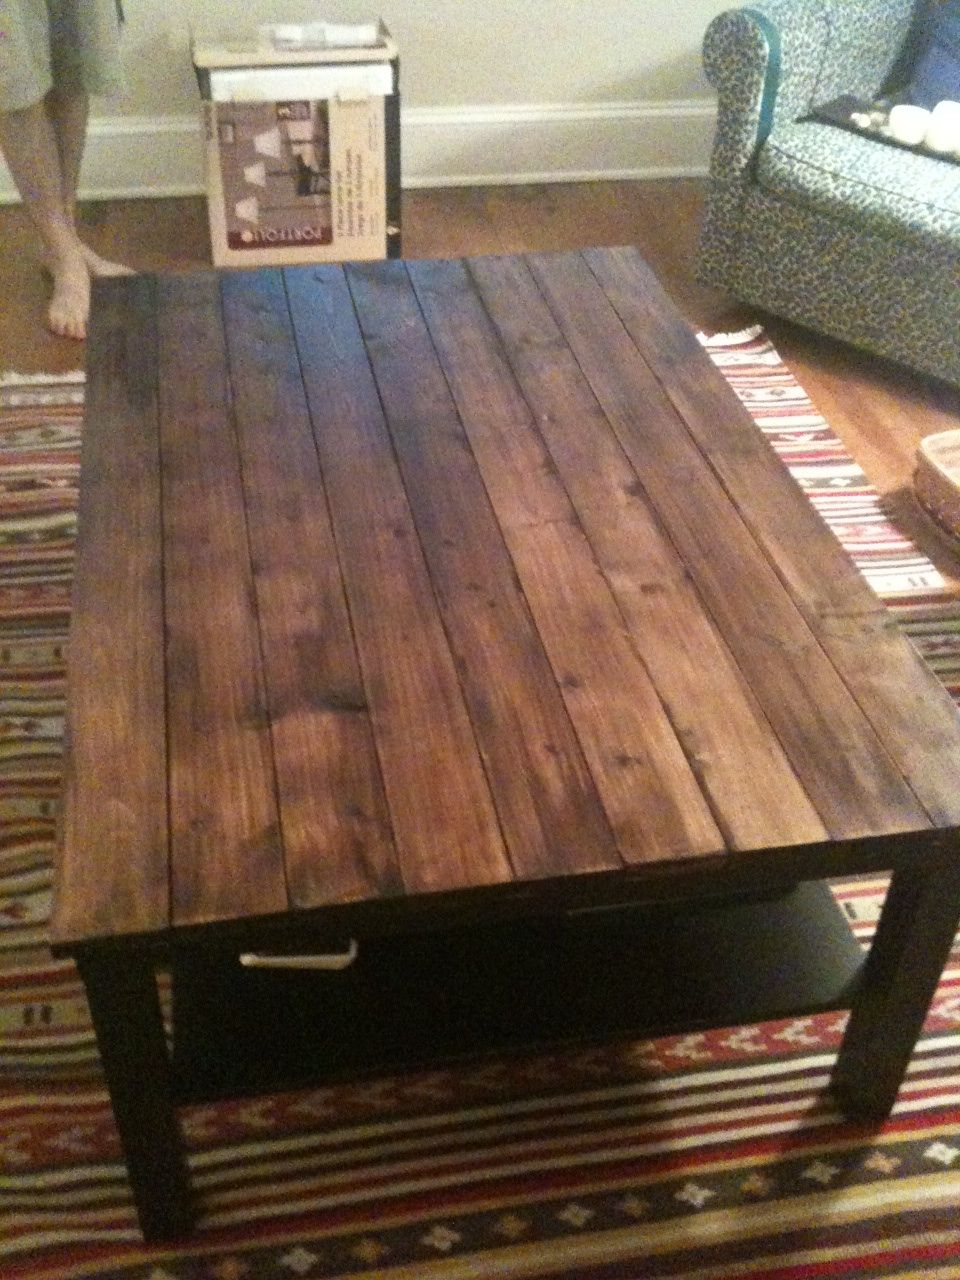 Diy Rustic Wood Coffee Table Makeover From An Ikea Coffee